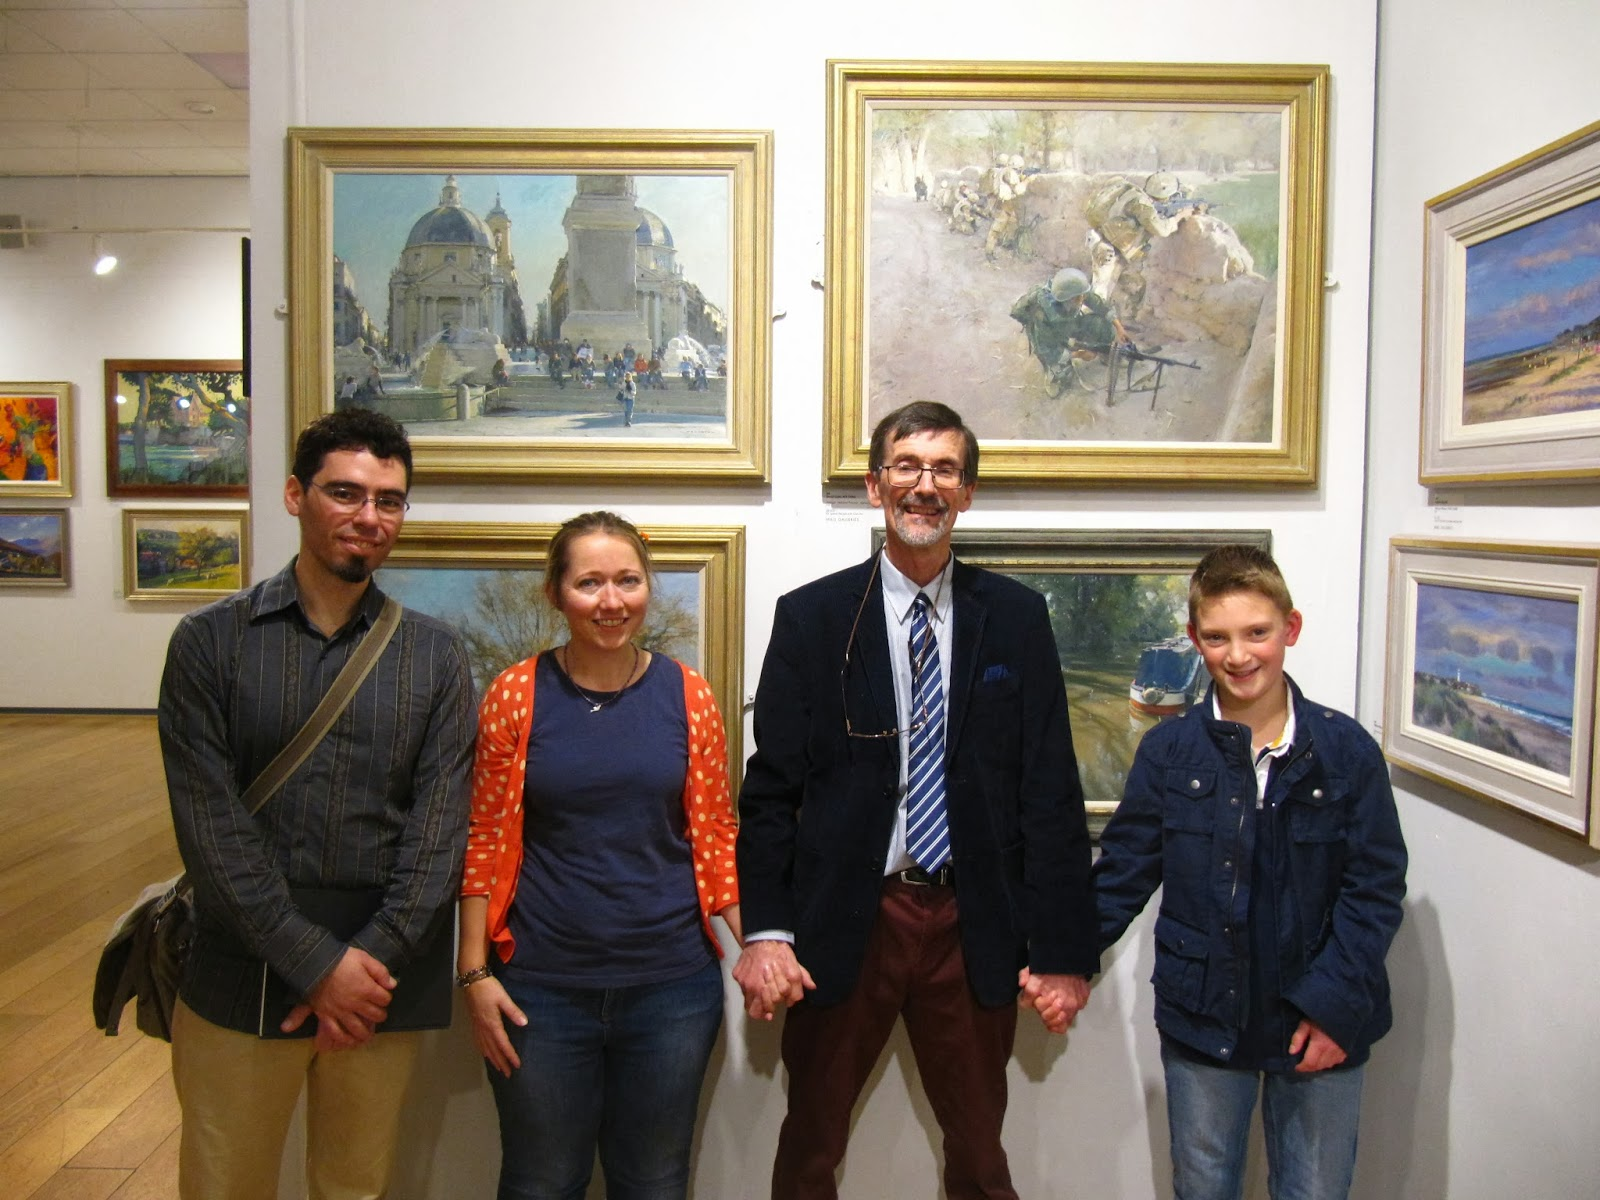 9.david curtis, michele del campo, haidee-jo and kieron williamson at the roi